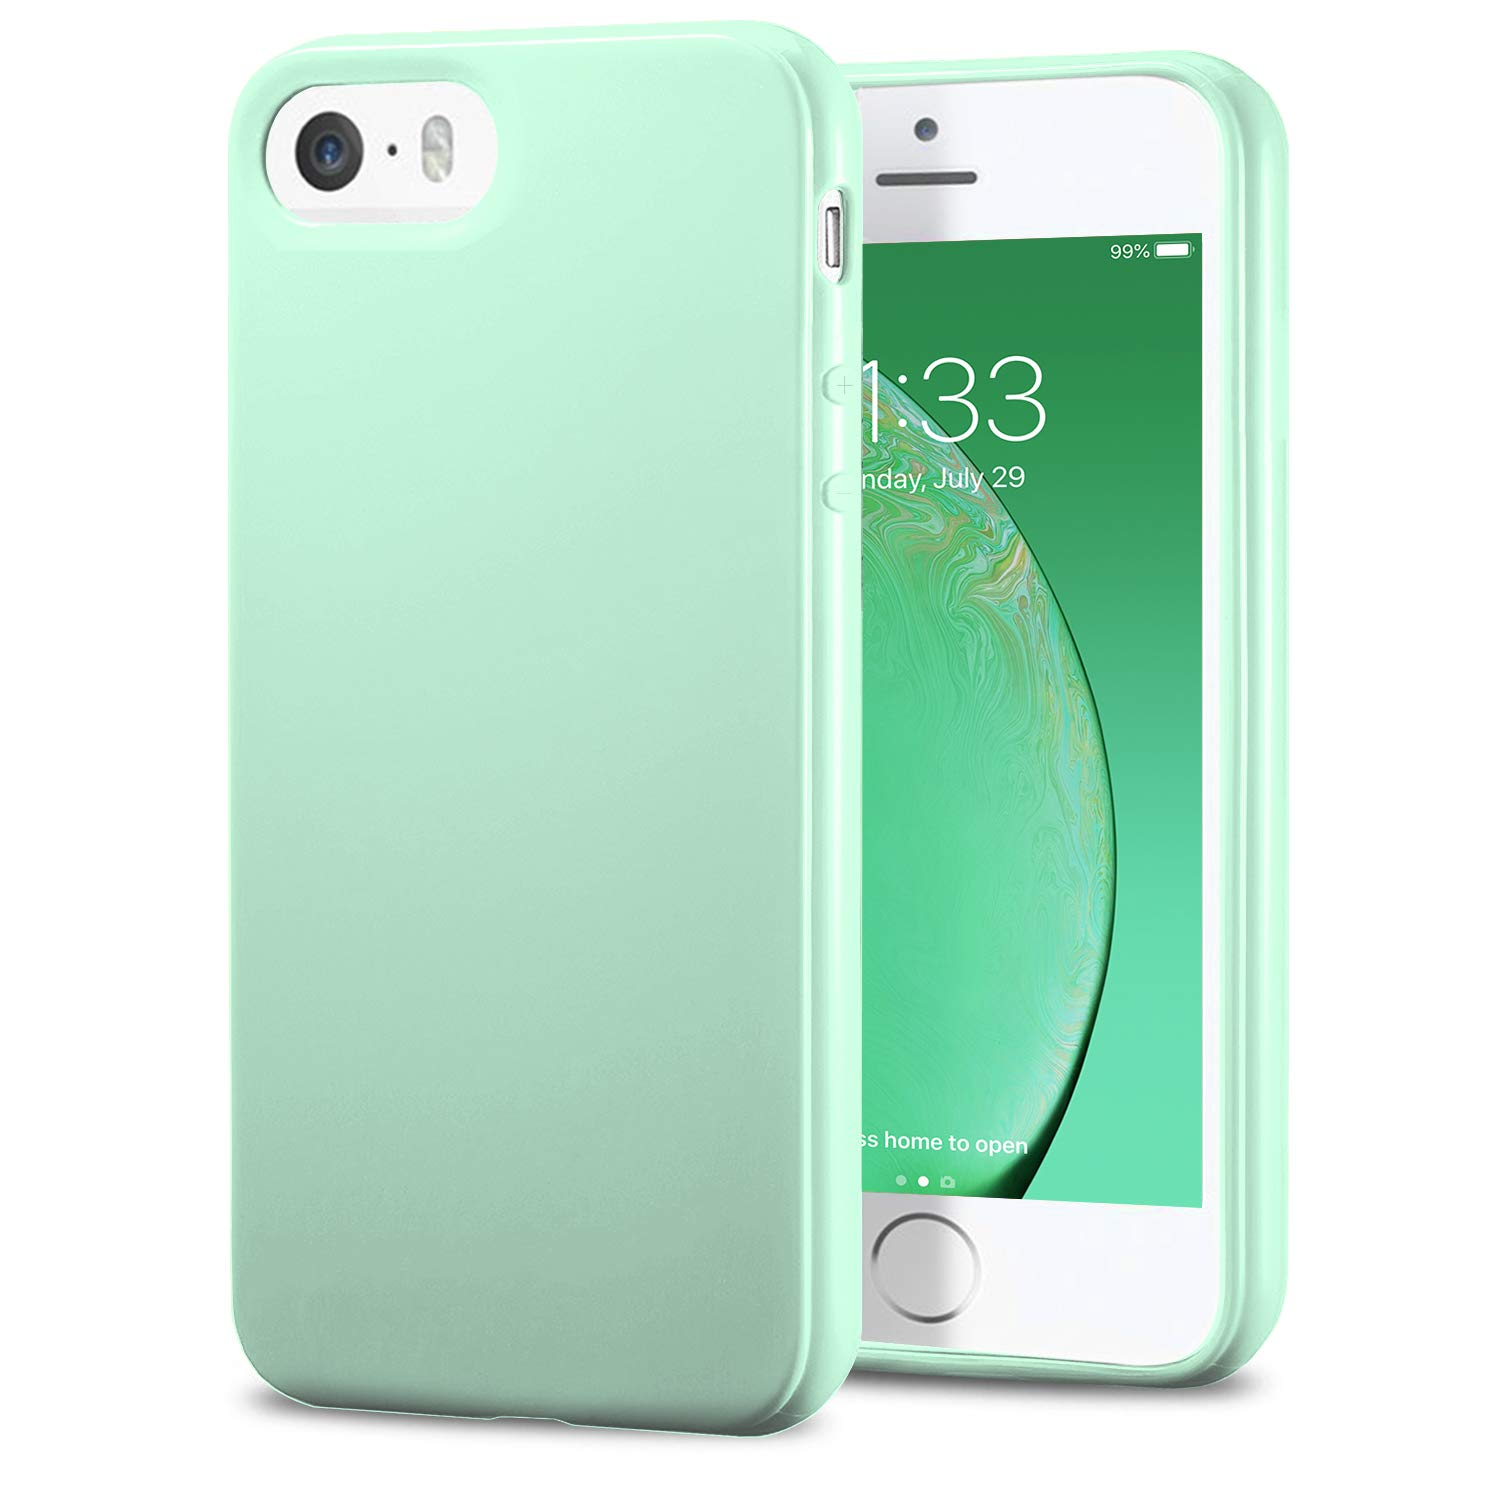 TENOC Phone Case Compatible for Apple iPhone SE/iPhone 5S/ iPhone 5, Slim Fit Cases Soft TPU Bumper Protective Cover, Glossy Mint